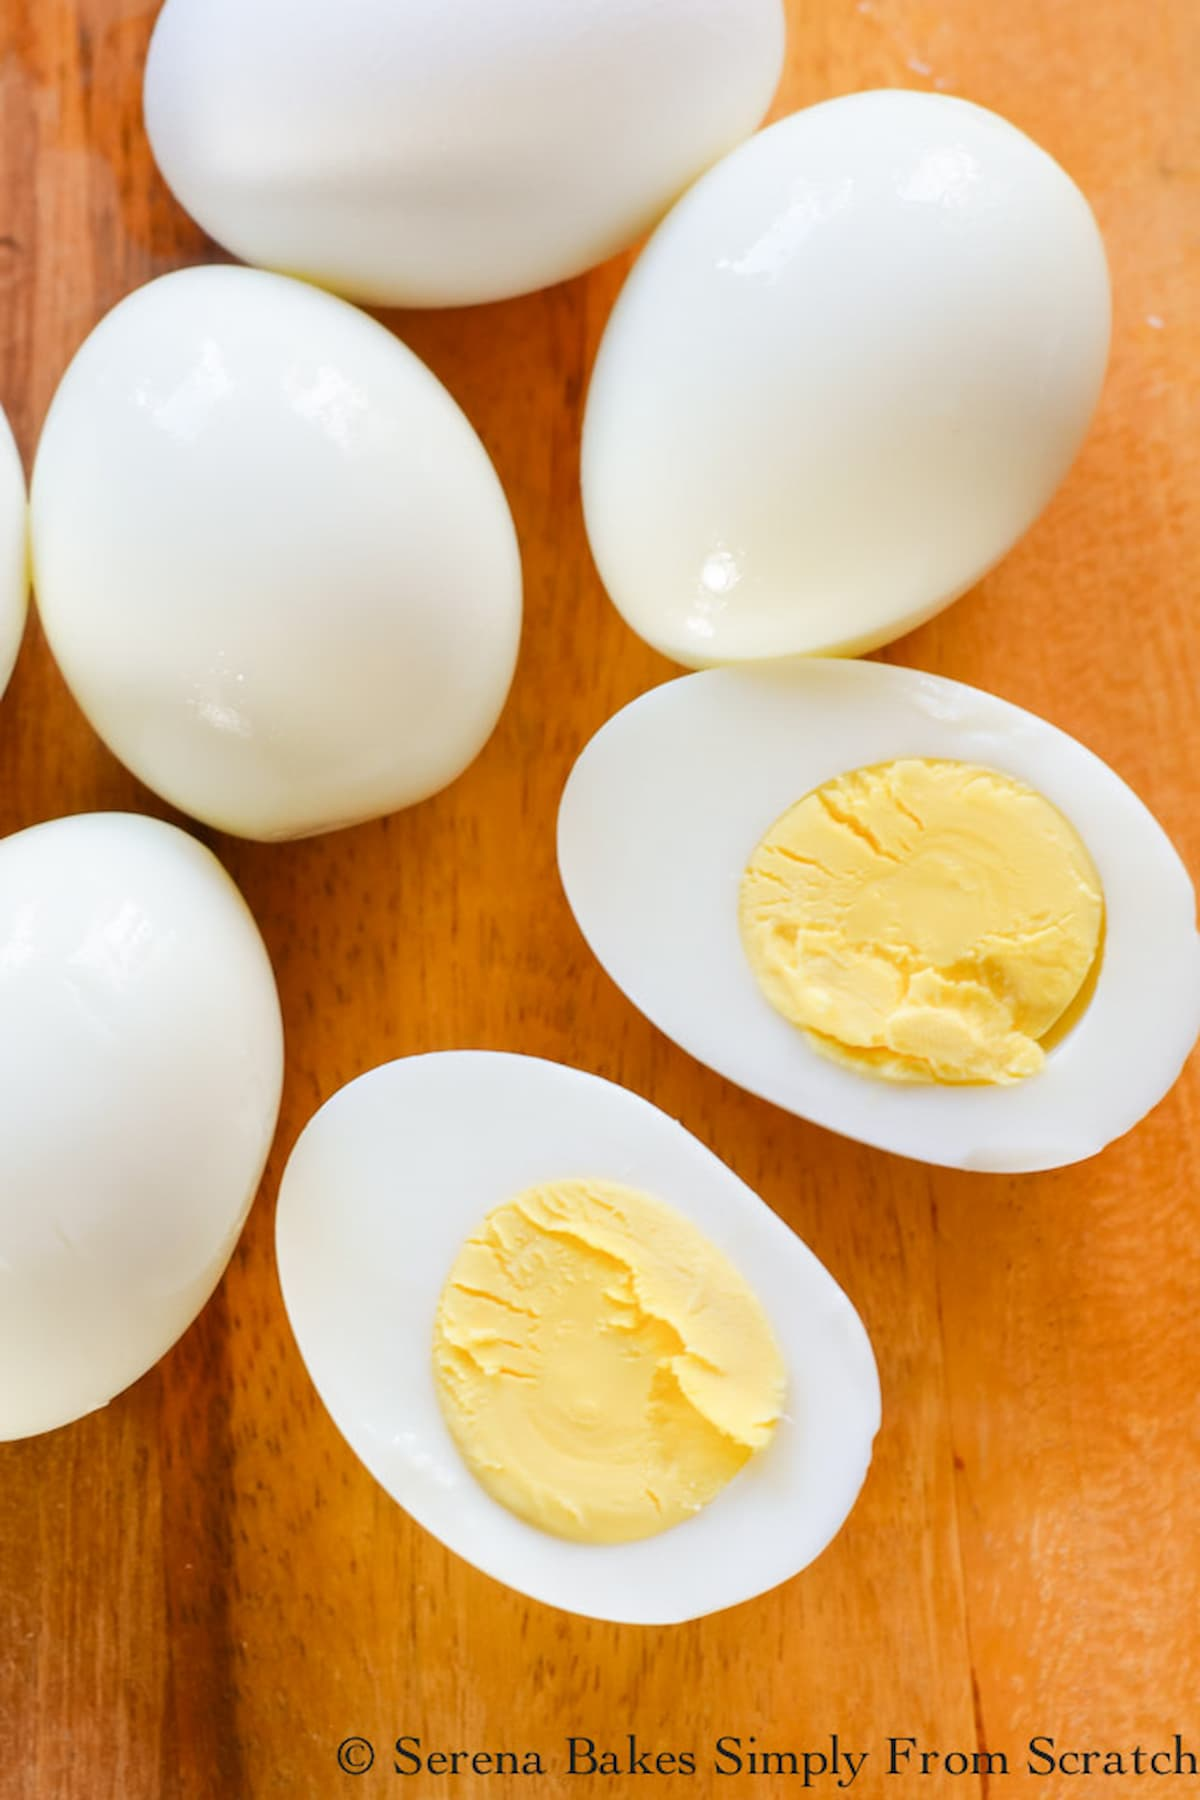 5 whole Easy Peel Whole Hard Boiled Eggs and 1 Egg cut in half to show the Yolk.